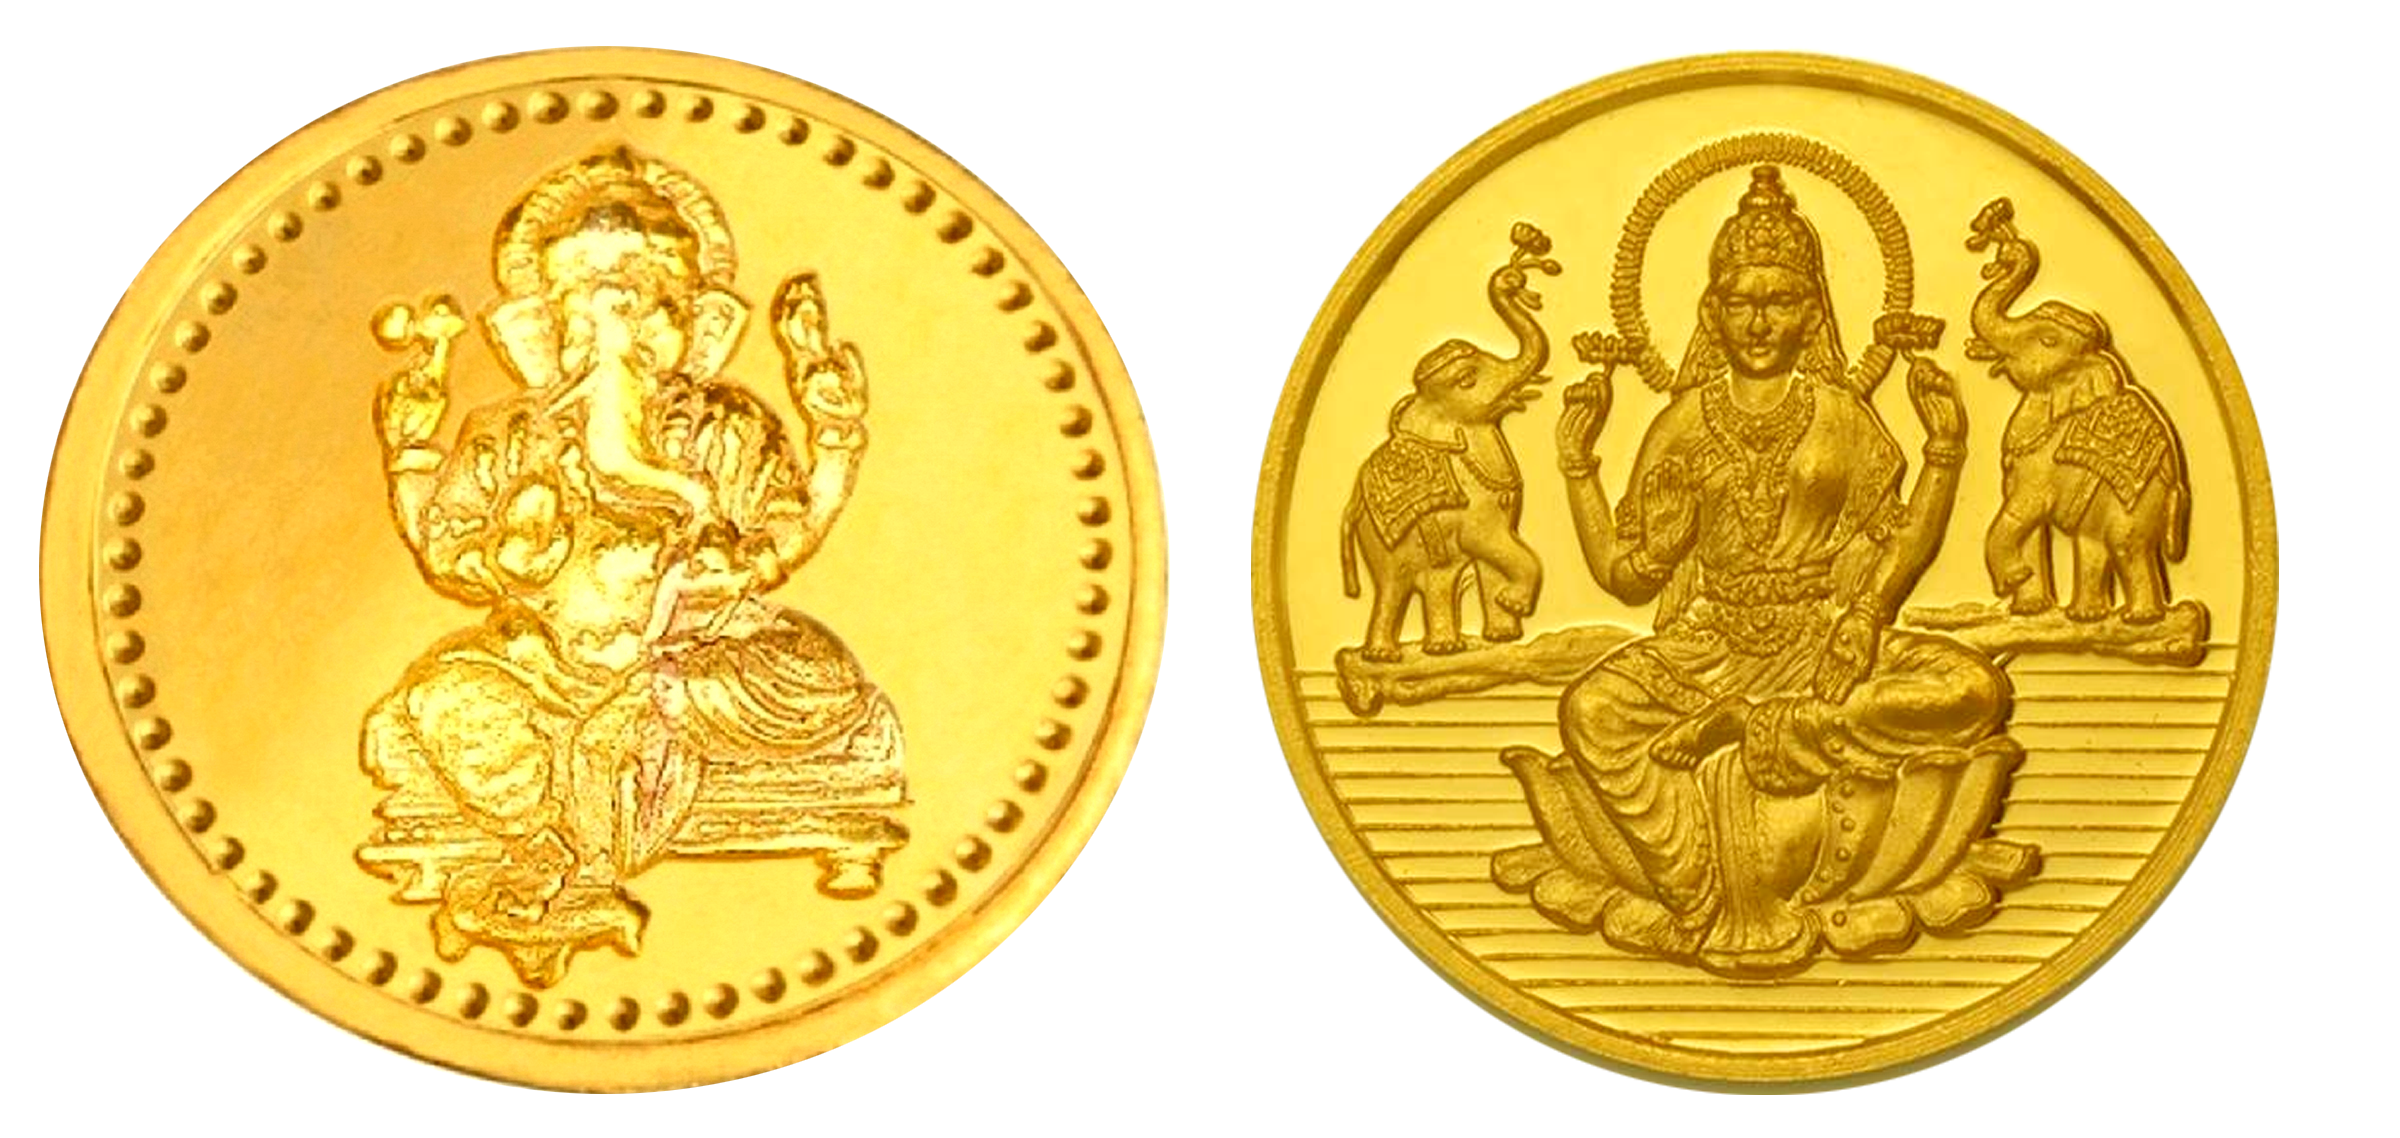 Laxmi and Ganesh images gold coin png - Coin HD PNG - Gold Coins PNG HD - PNG HD Coins